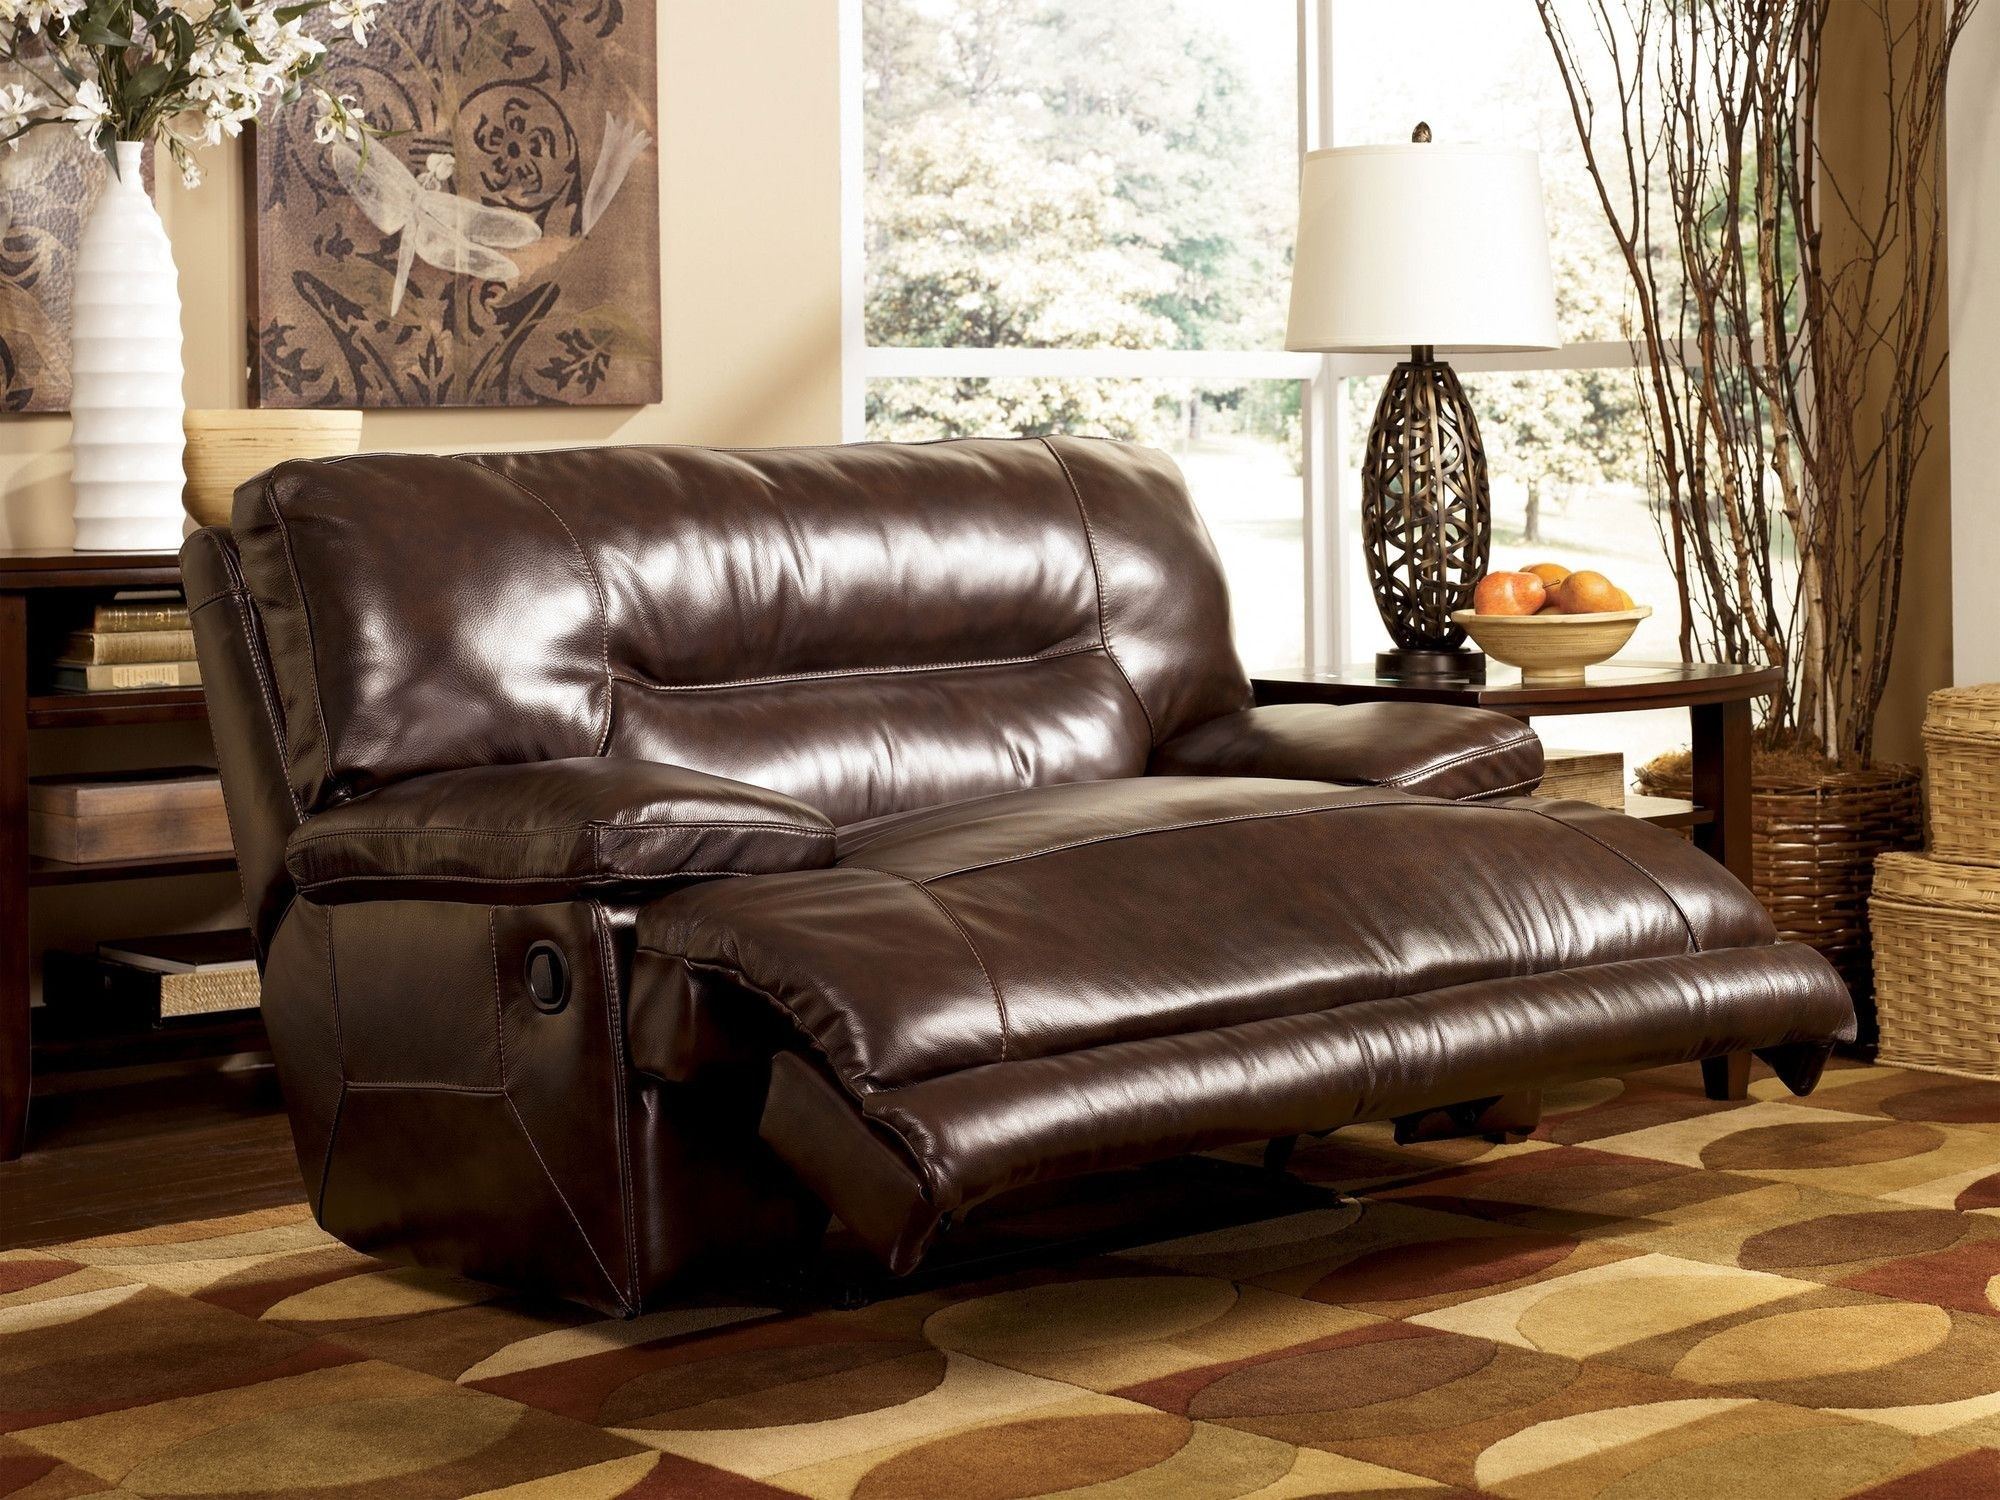 double recliner chairs leather office chair modern seat ideas on foter two person 1